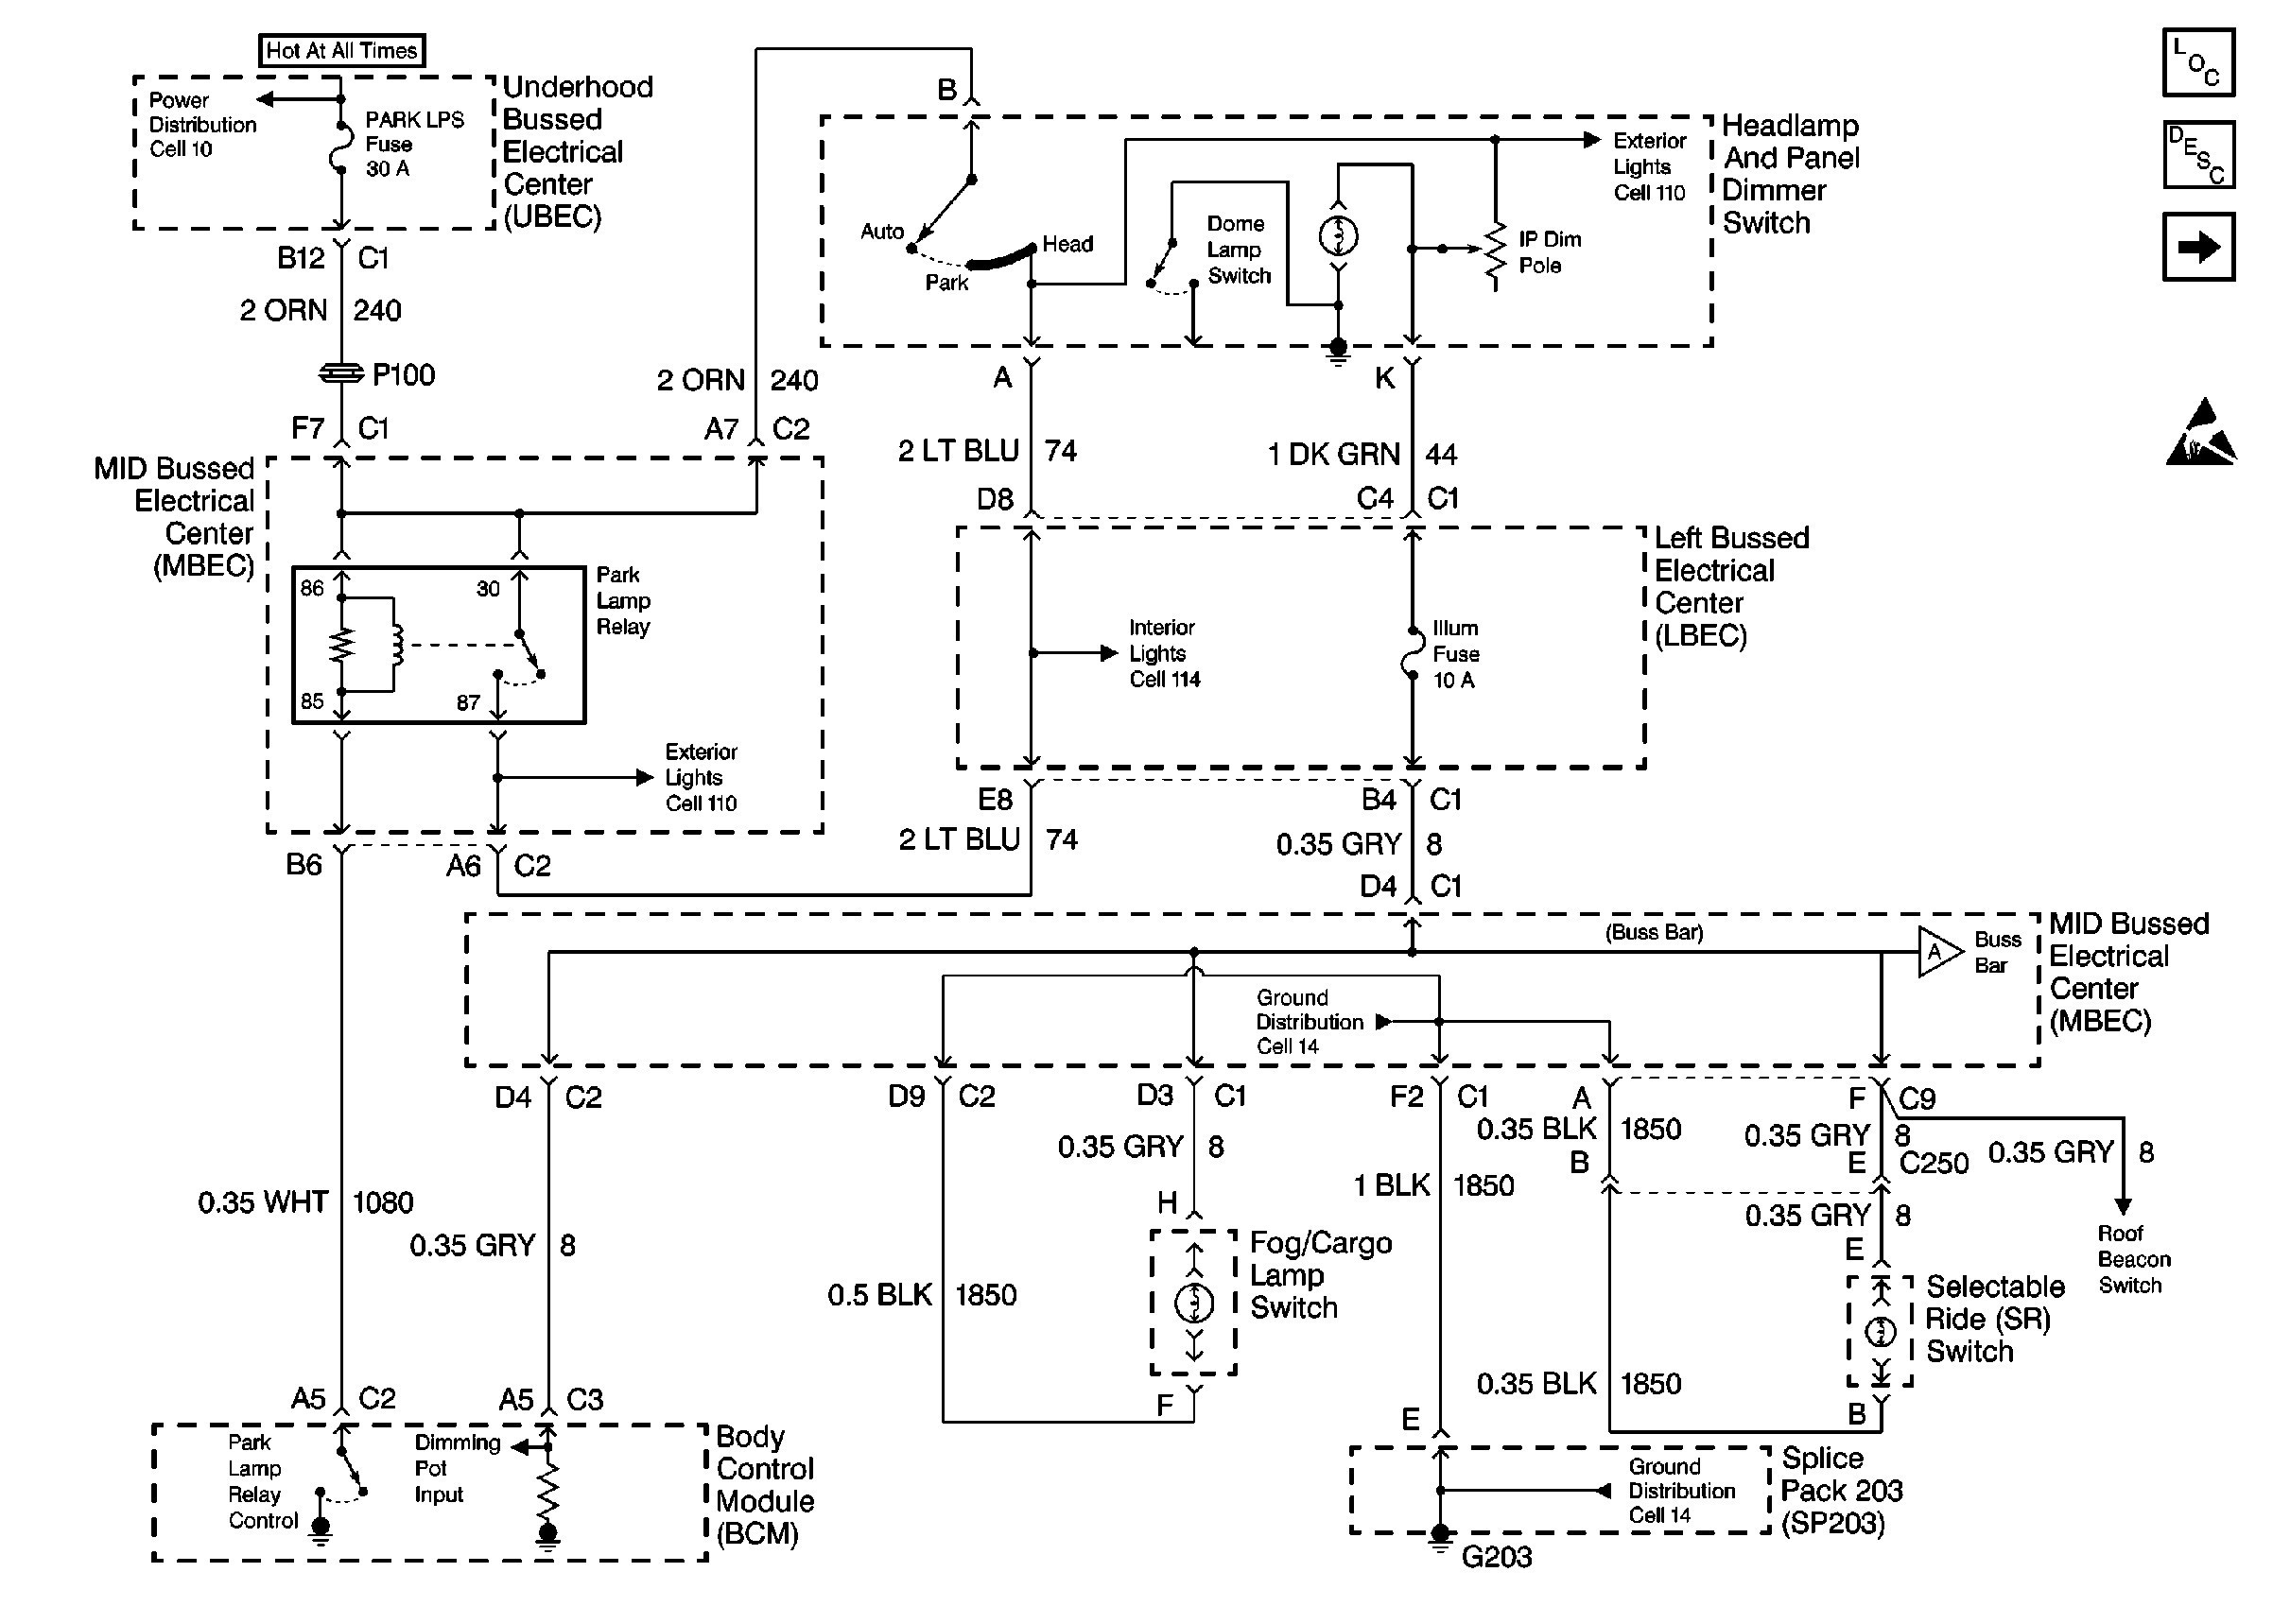 Chevy Silverado Trailer Wiring Diagram 2006 Sample Random | Philteg.in - Trailer Wiring Diagram For 2006 Chevy Silverado